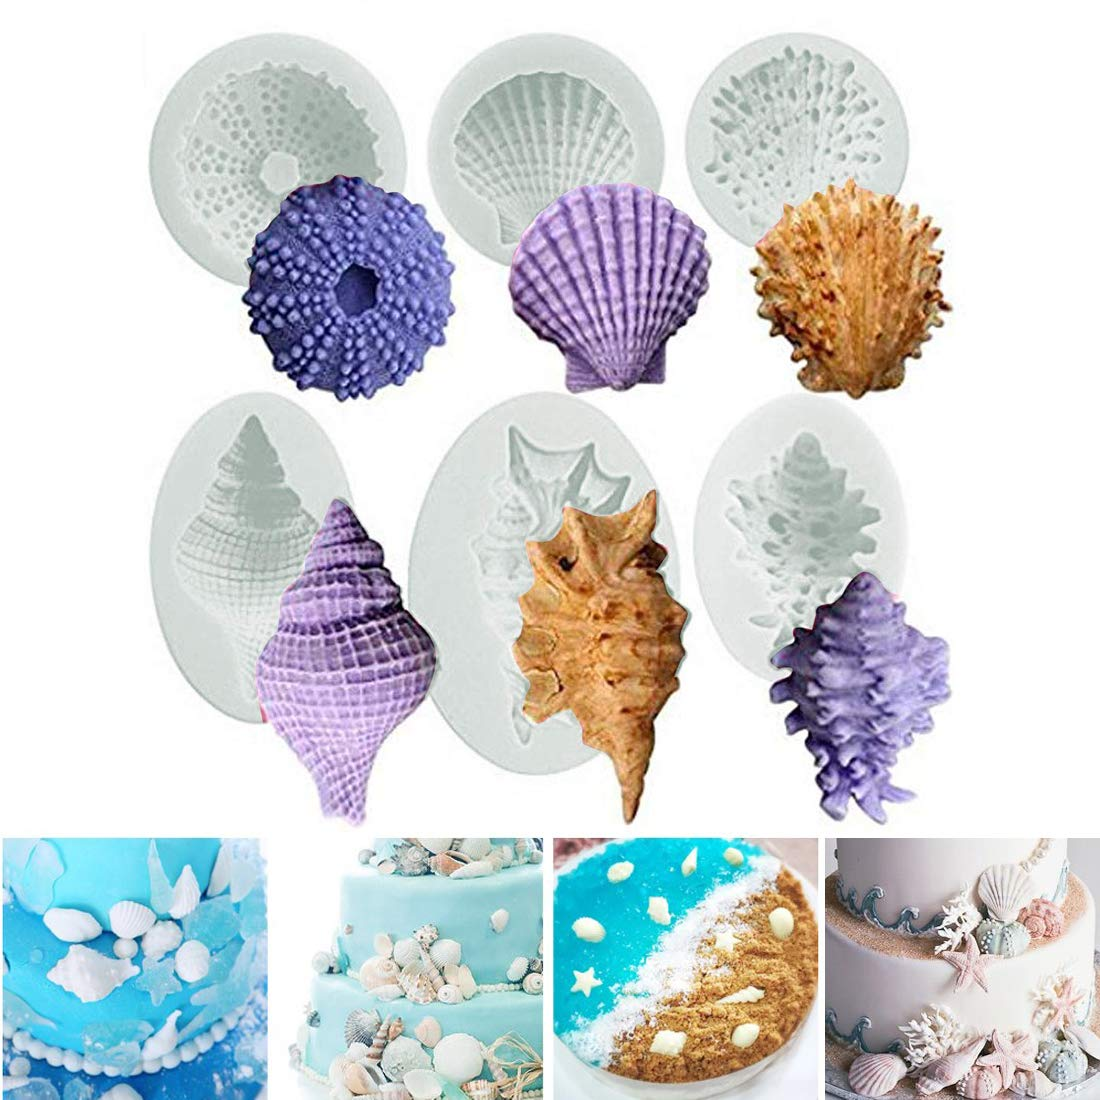 Sea Life Cake Mould Silicone 3D Starfish Seashells Conch Marine Beach Cupcake Topper,Fondant Cake Decorating Tools Chocolate Candy Soap Sugar Molds Kitchen Baking DIY Style of 6